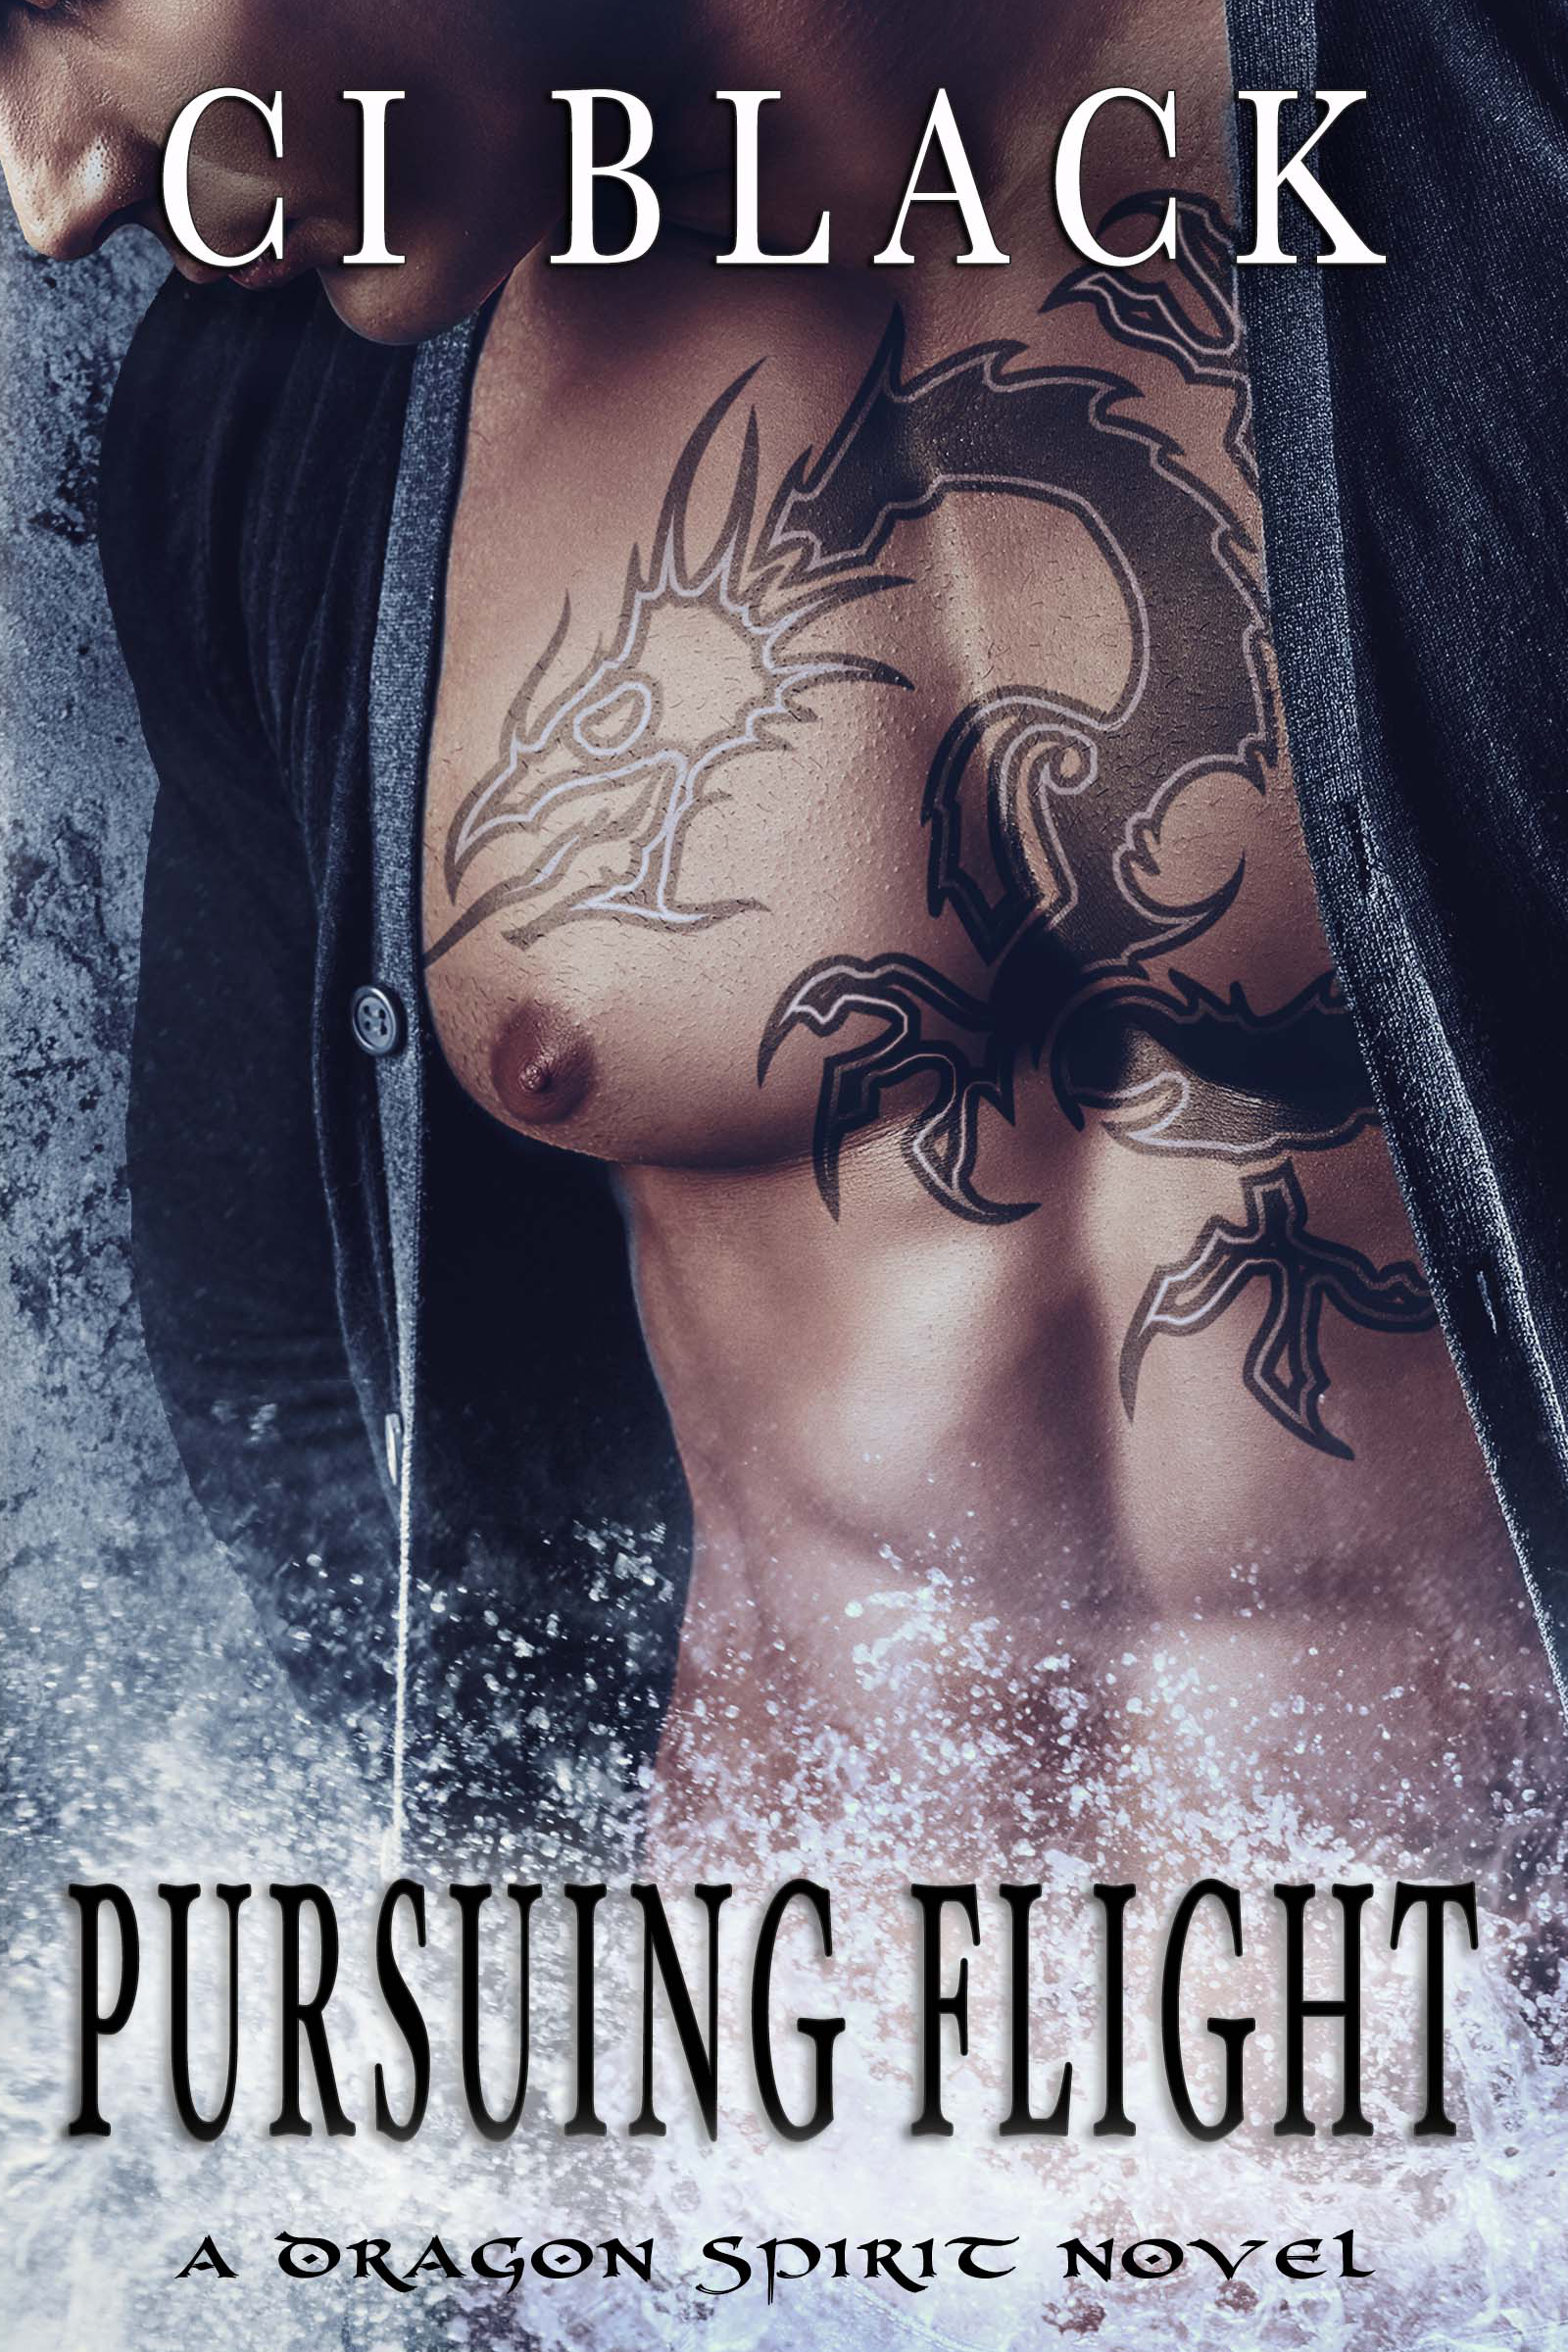 Pursuing Flight, an urban fantasy / paranormal romance and the fourth book in the Dragon Spirit series by C.I. Black